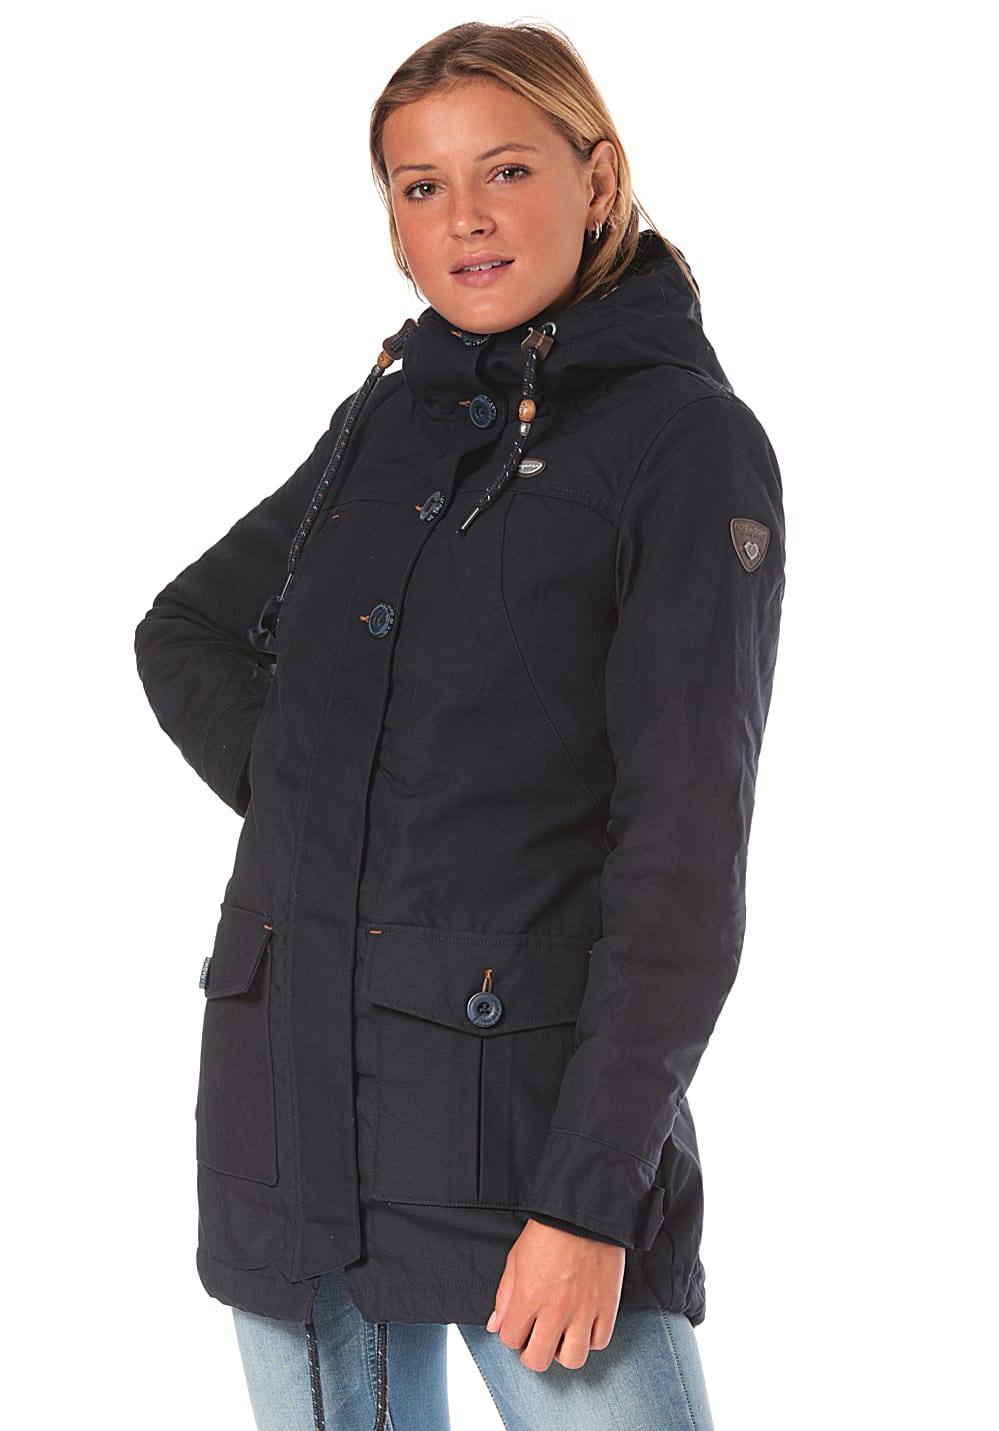 Jacken - ragwear Jane Jacke für Damen Blau  - Onlineshop Planet Sports